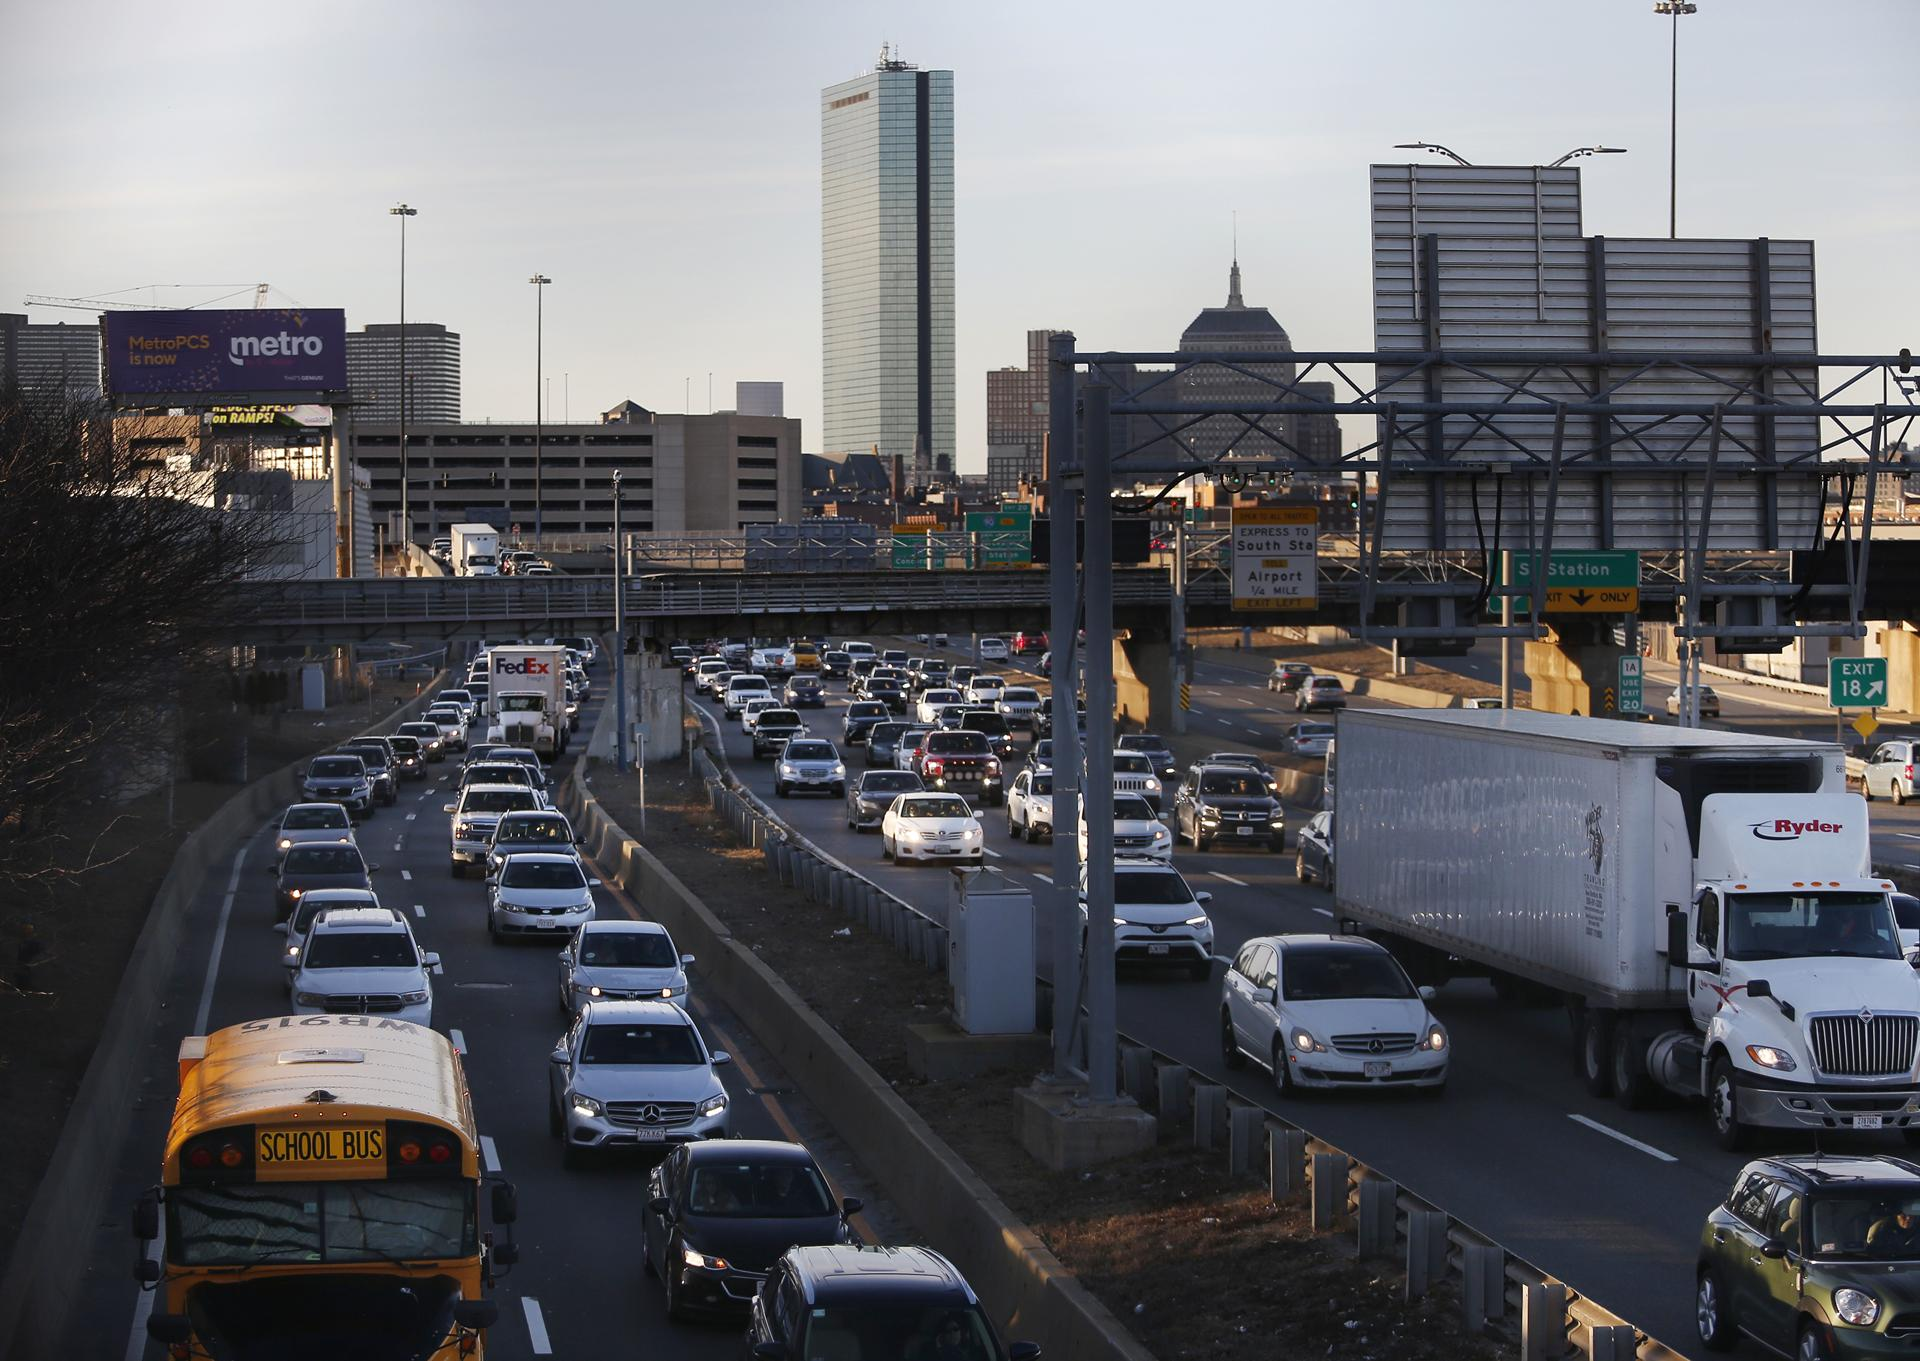 Boston has the worst rush-hour traffic in the country, says INRIX's annual report tracking traffic across the world.